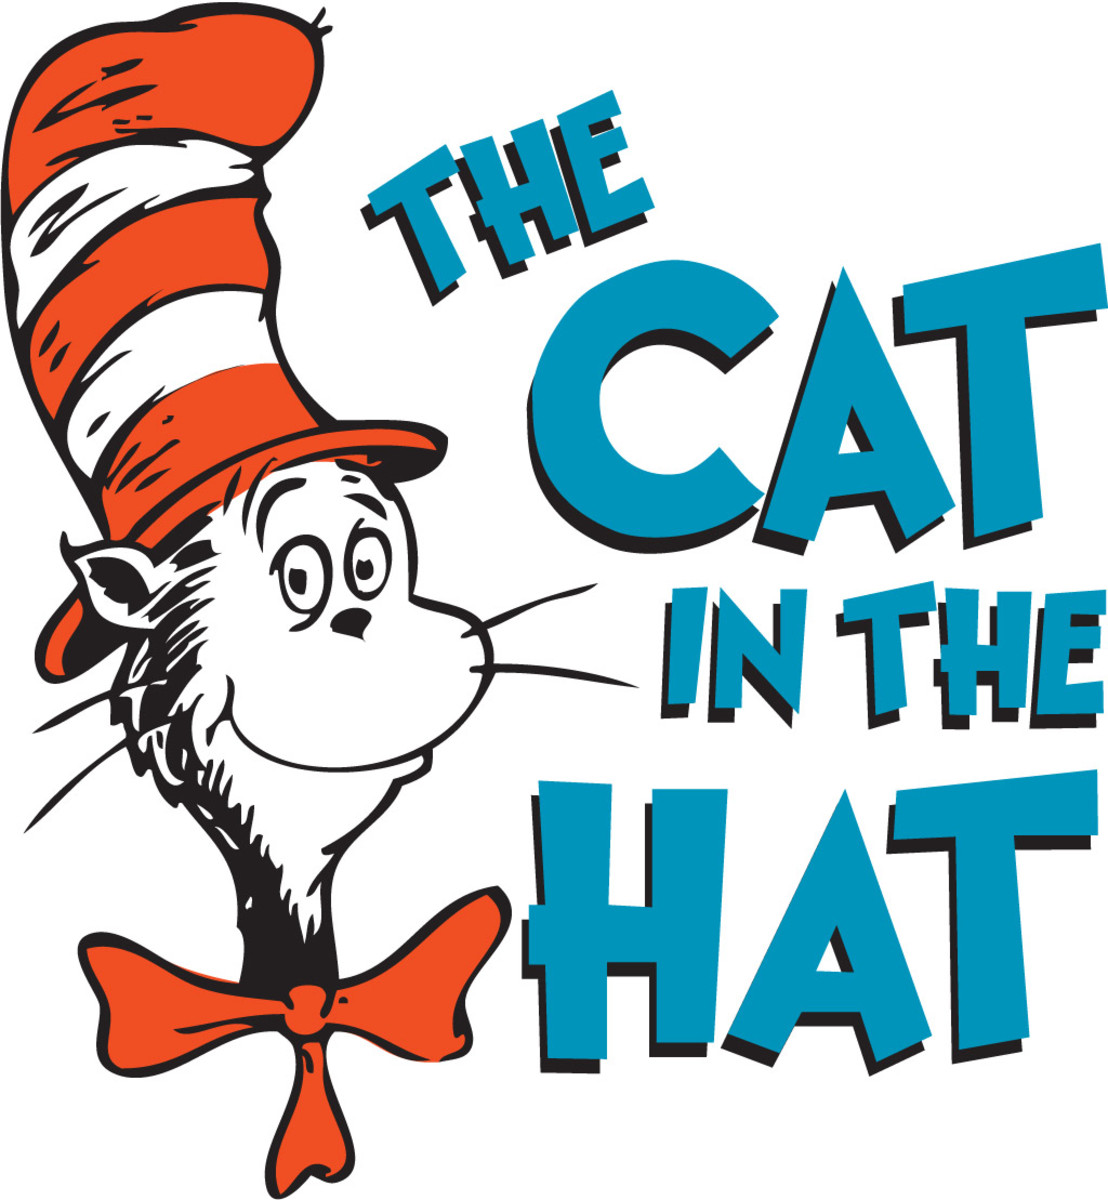 The Cat in the Hat Photo